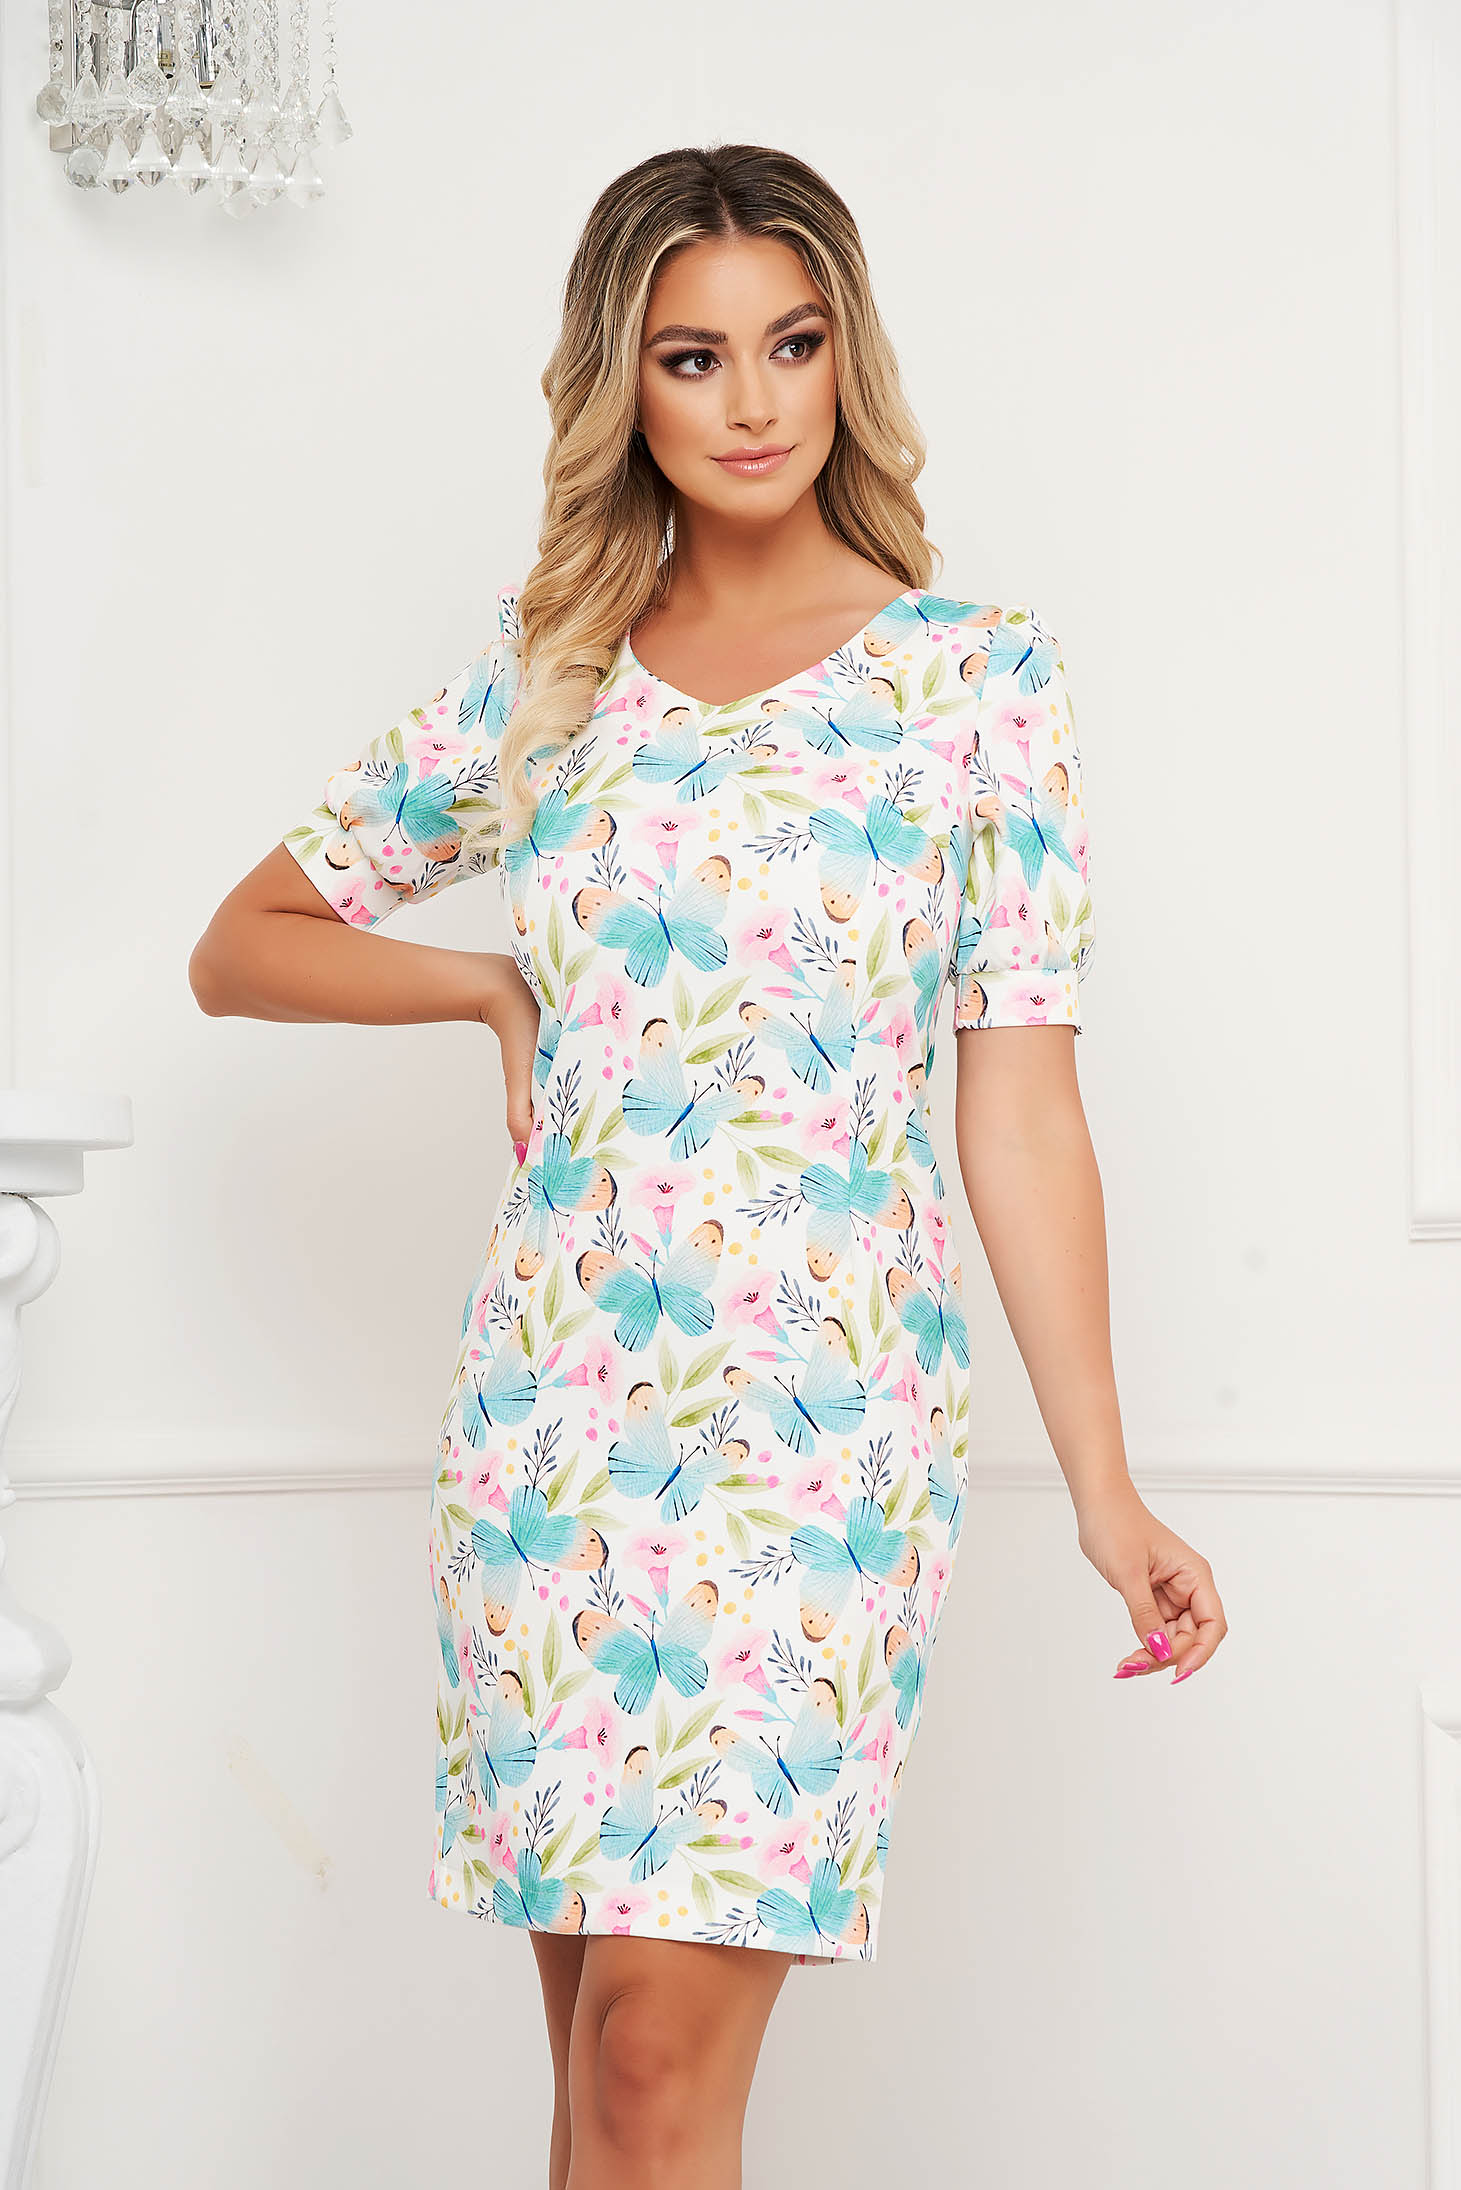 StarShinerS dress with floral print straight short cut office non-flexible thin fabric